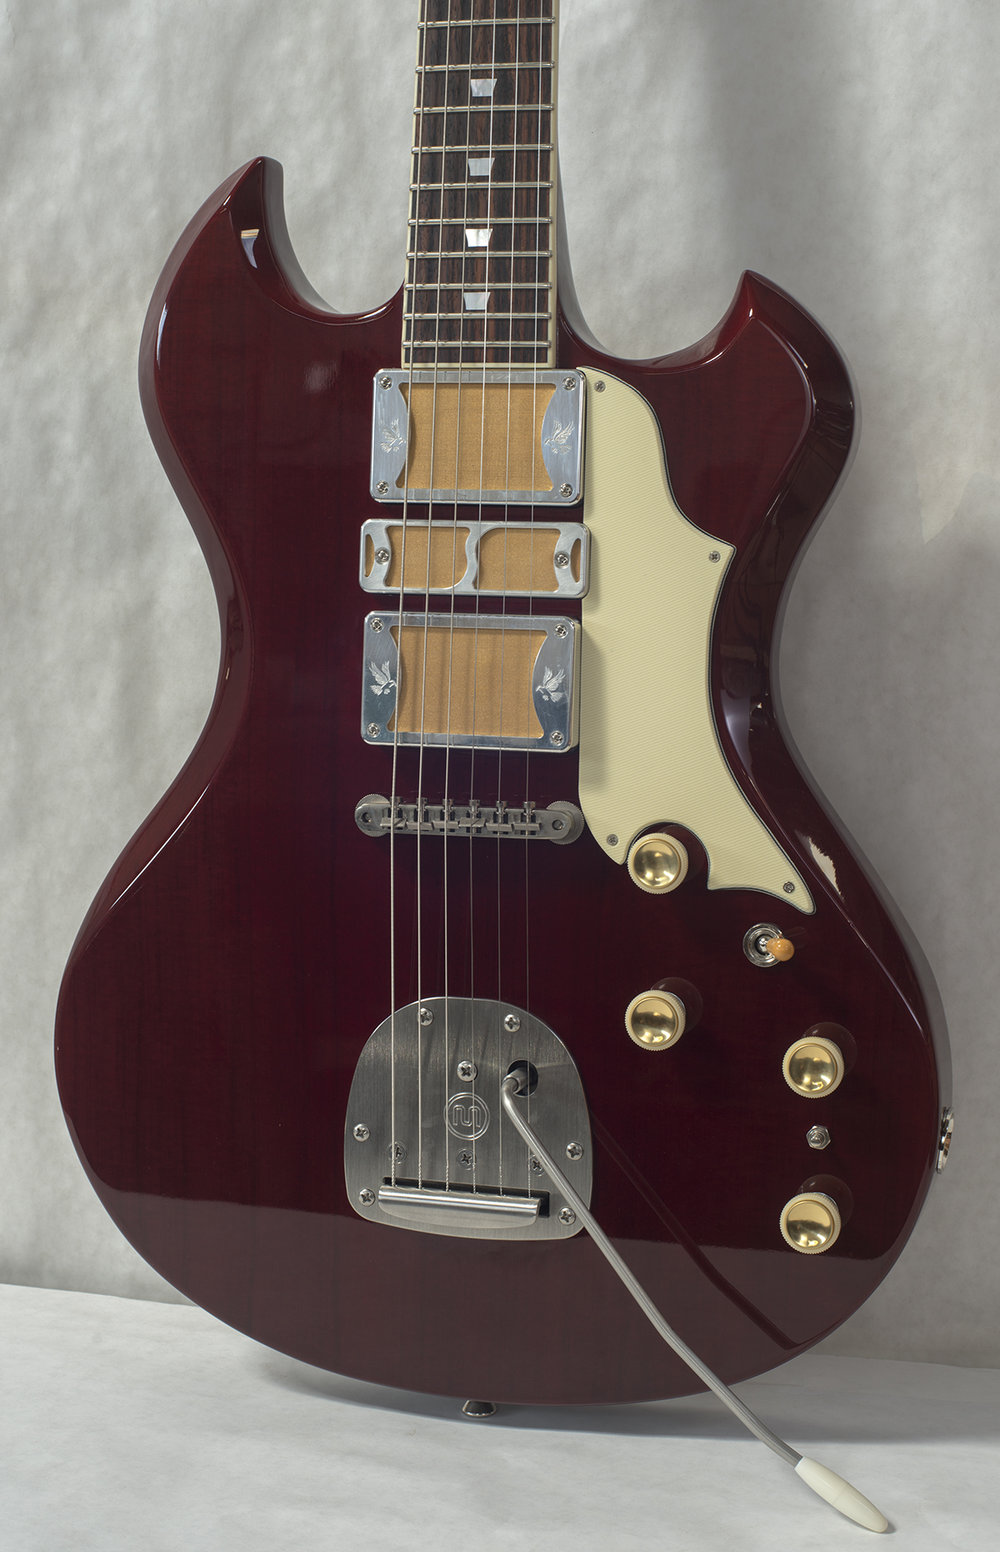 Stormcrow Standard RSC008 Wine Red Body Angle #1 WEB.jpg